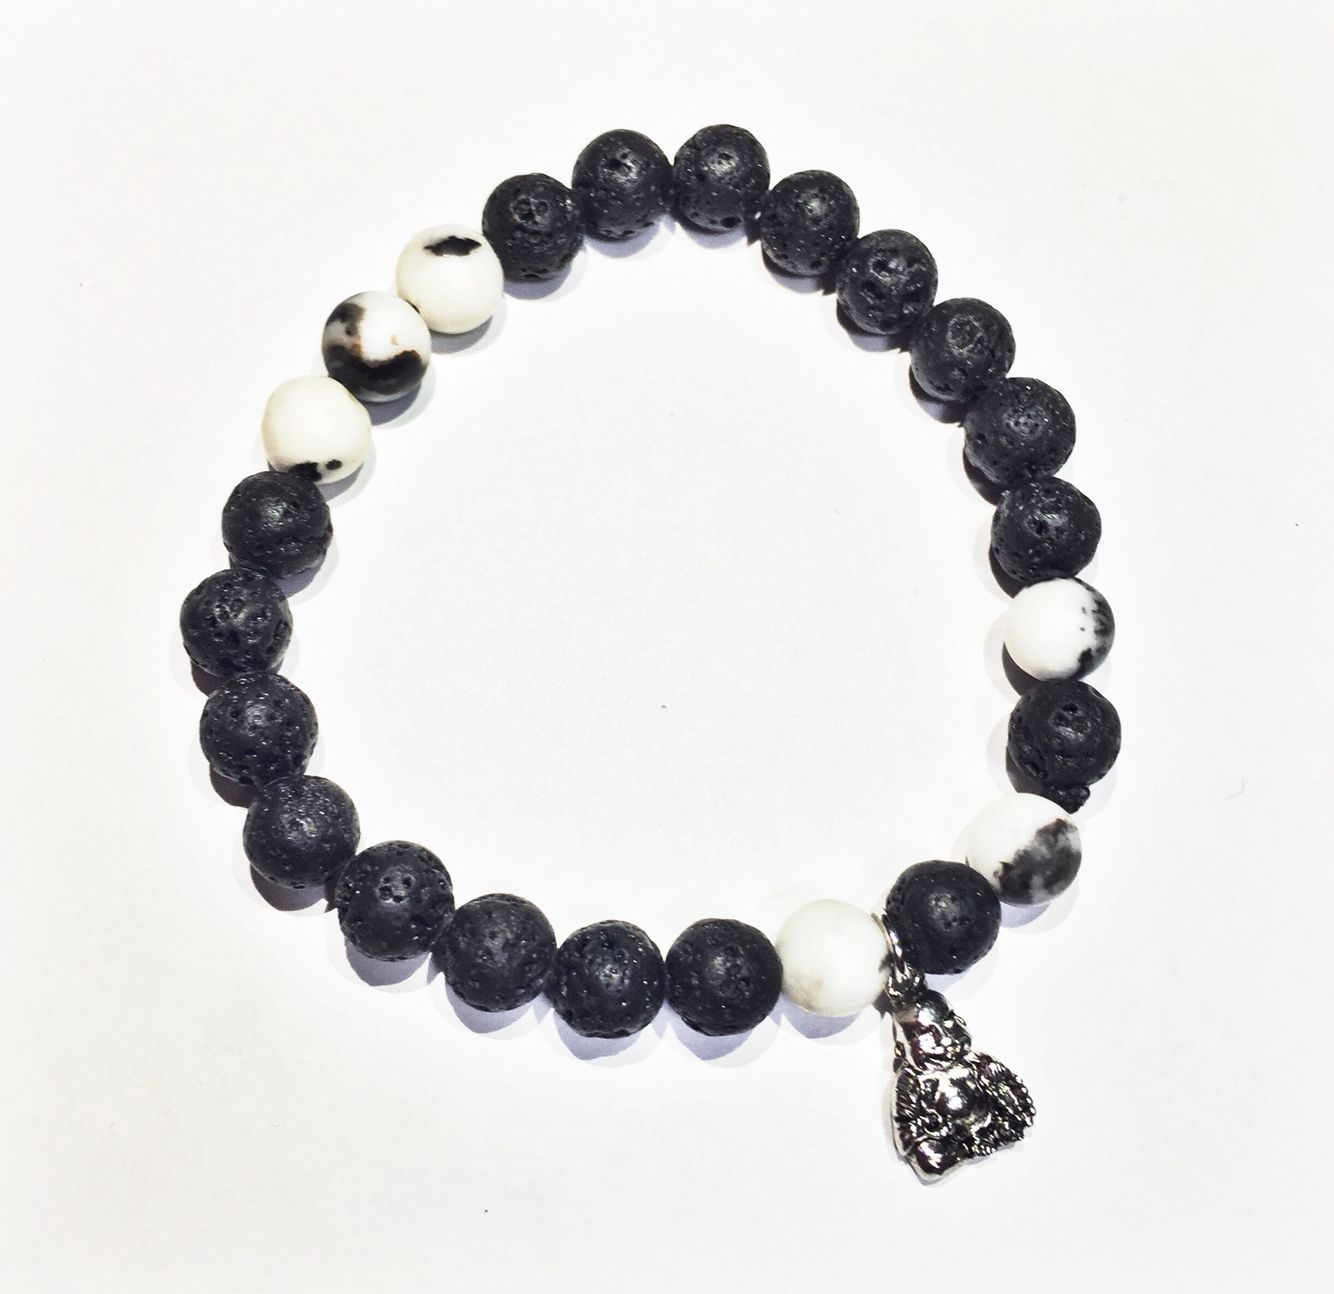 Handmade bracelet crafted from Lava Rock and Zebra Stone. Made by Unbound Essentials.